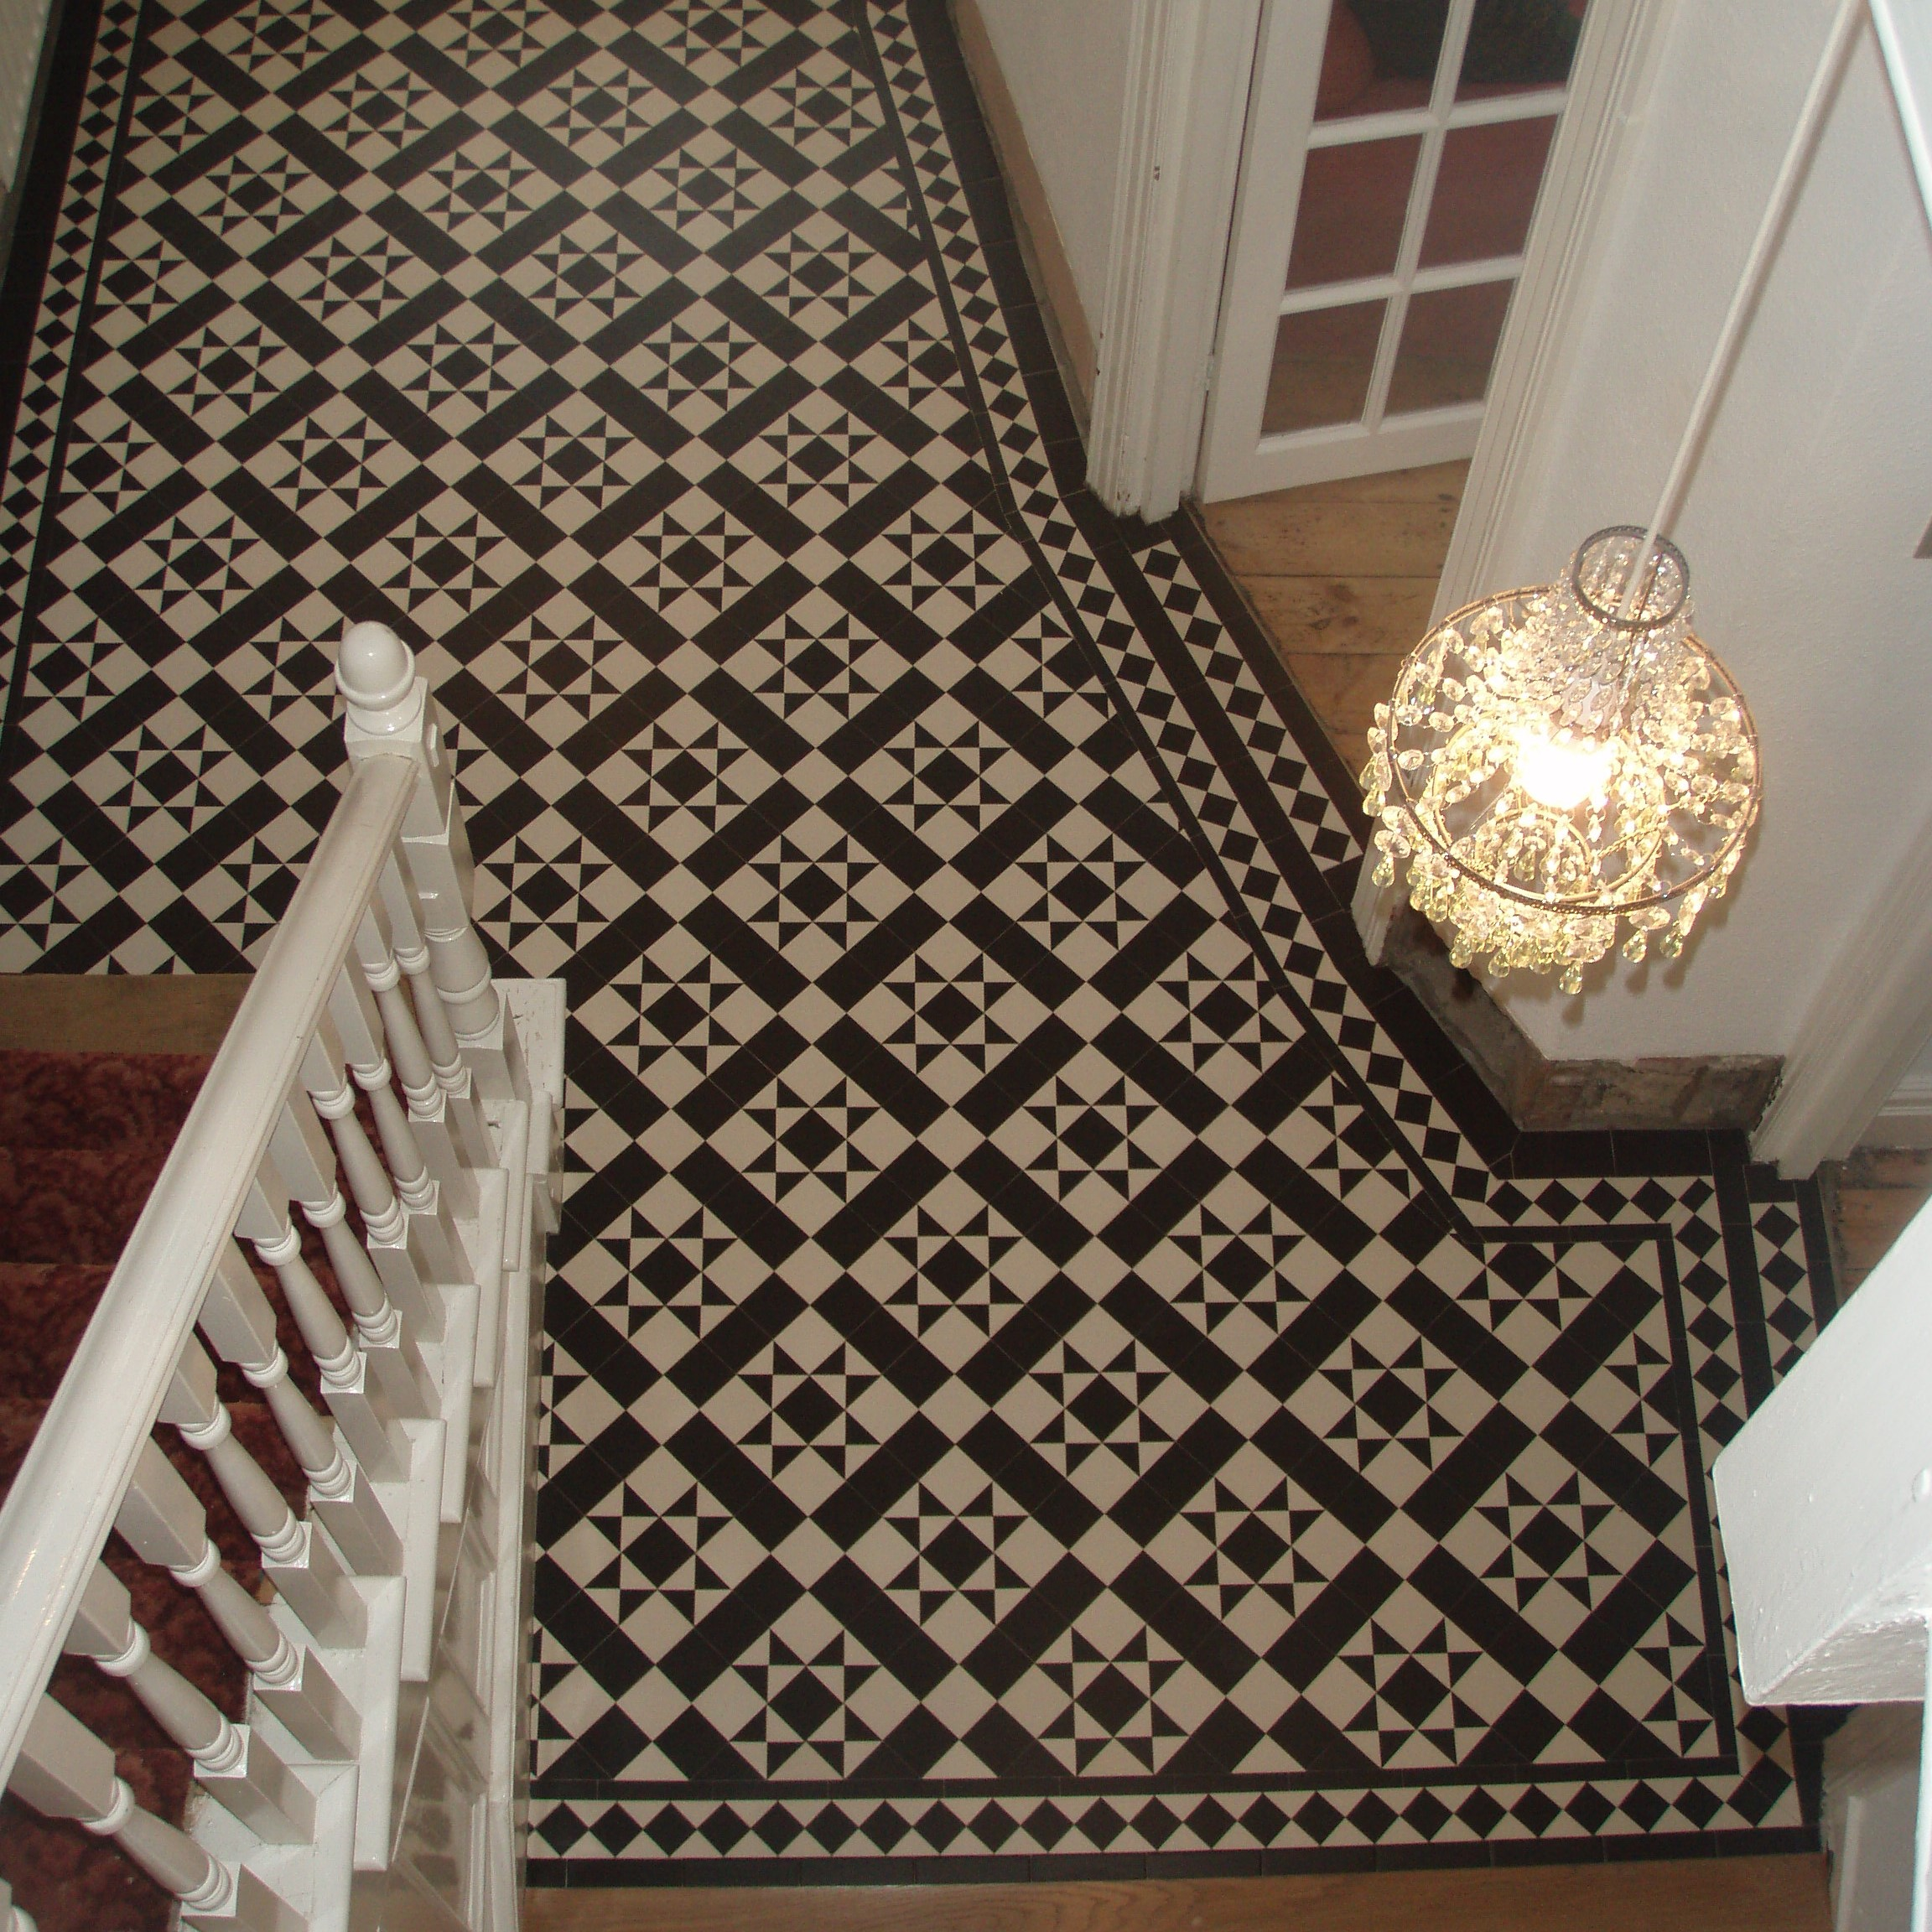 Olde english victorian floor carron pattern edinburgh tile studio olde english carron pattern edinburgh tile studio dailygadgetfo Images